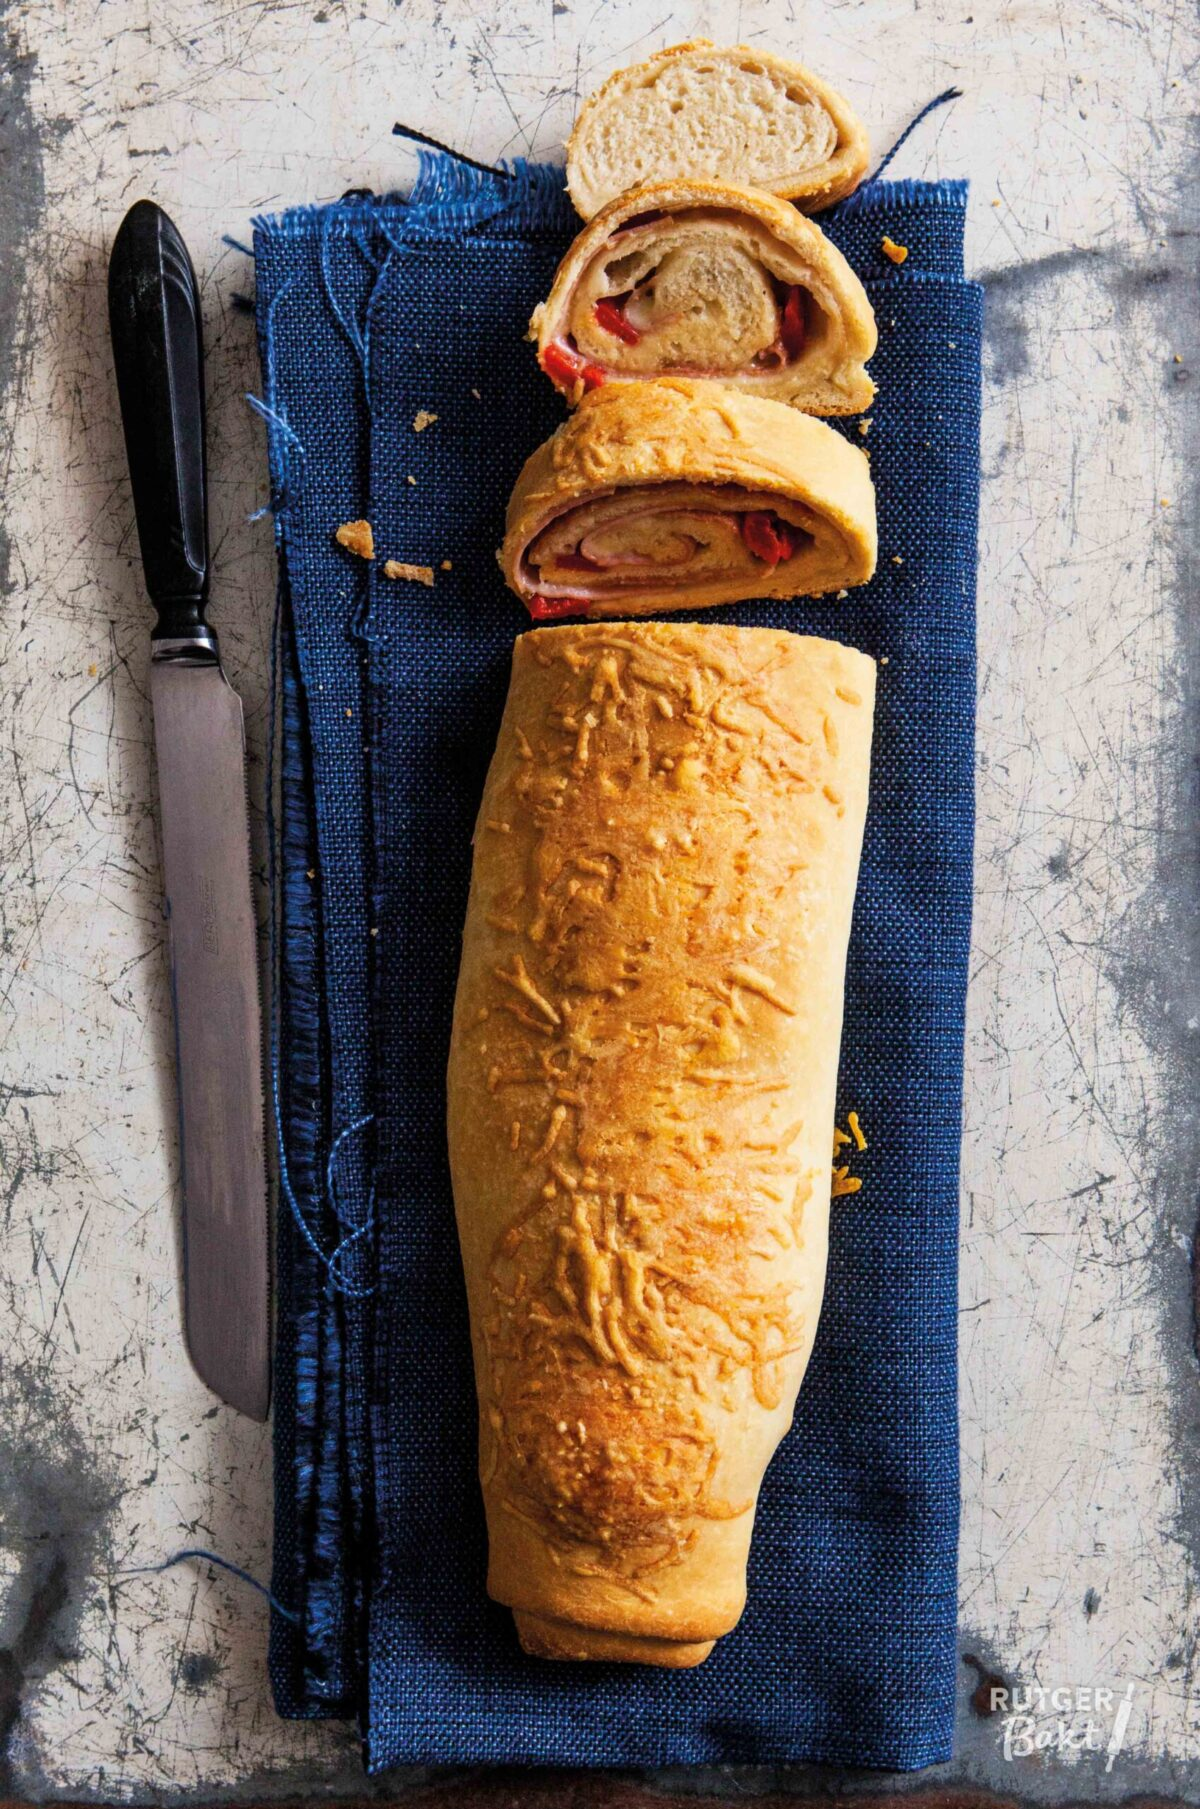 Stromboli – opgerold pizzabrood